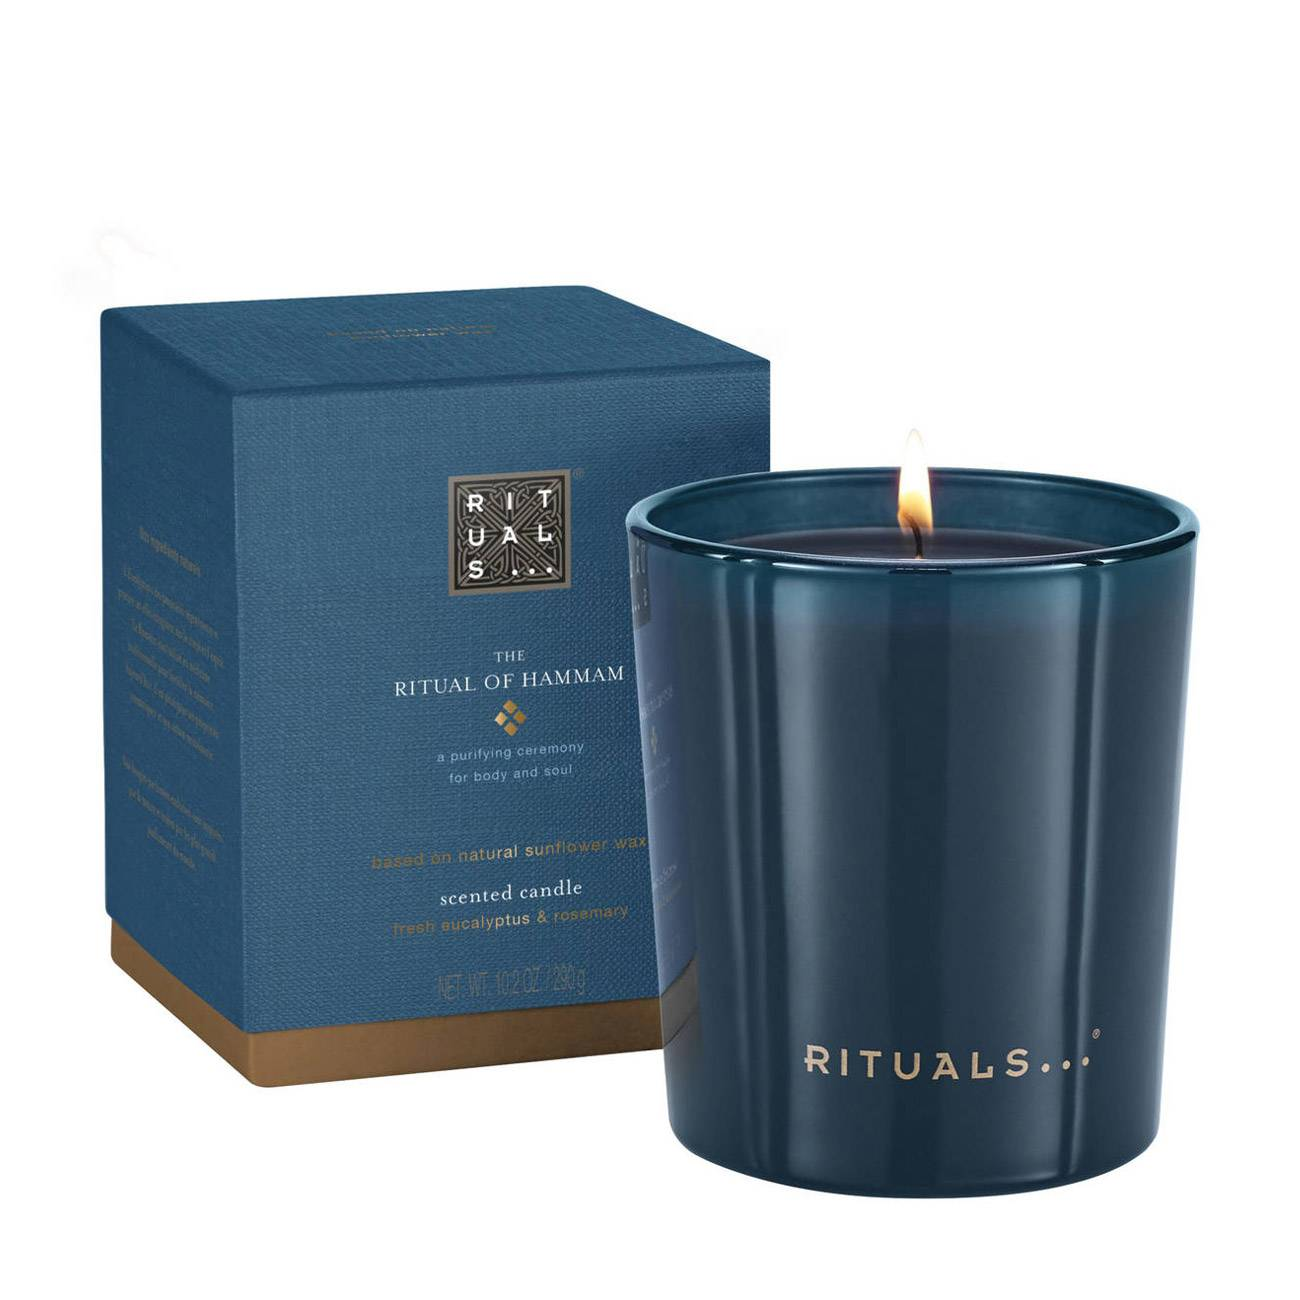 THE RITUAL OF HAMMAM SCENTED CANDLE 290 Grame imagine produs